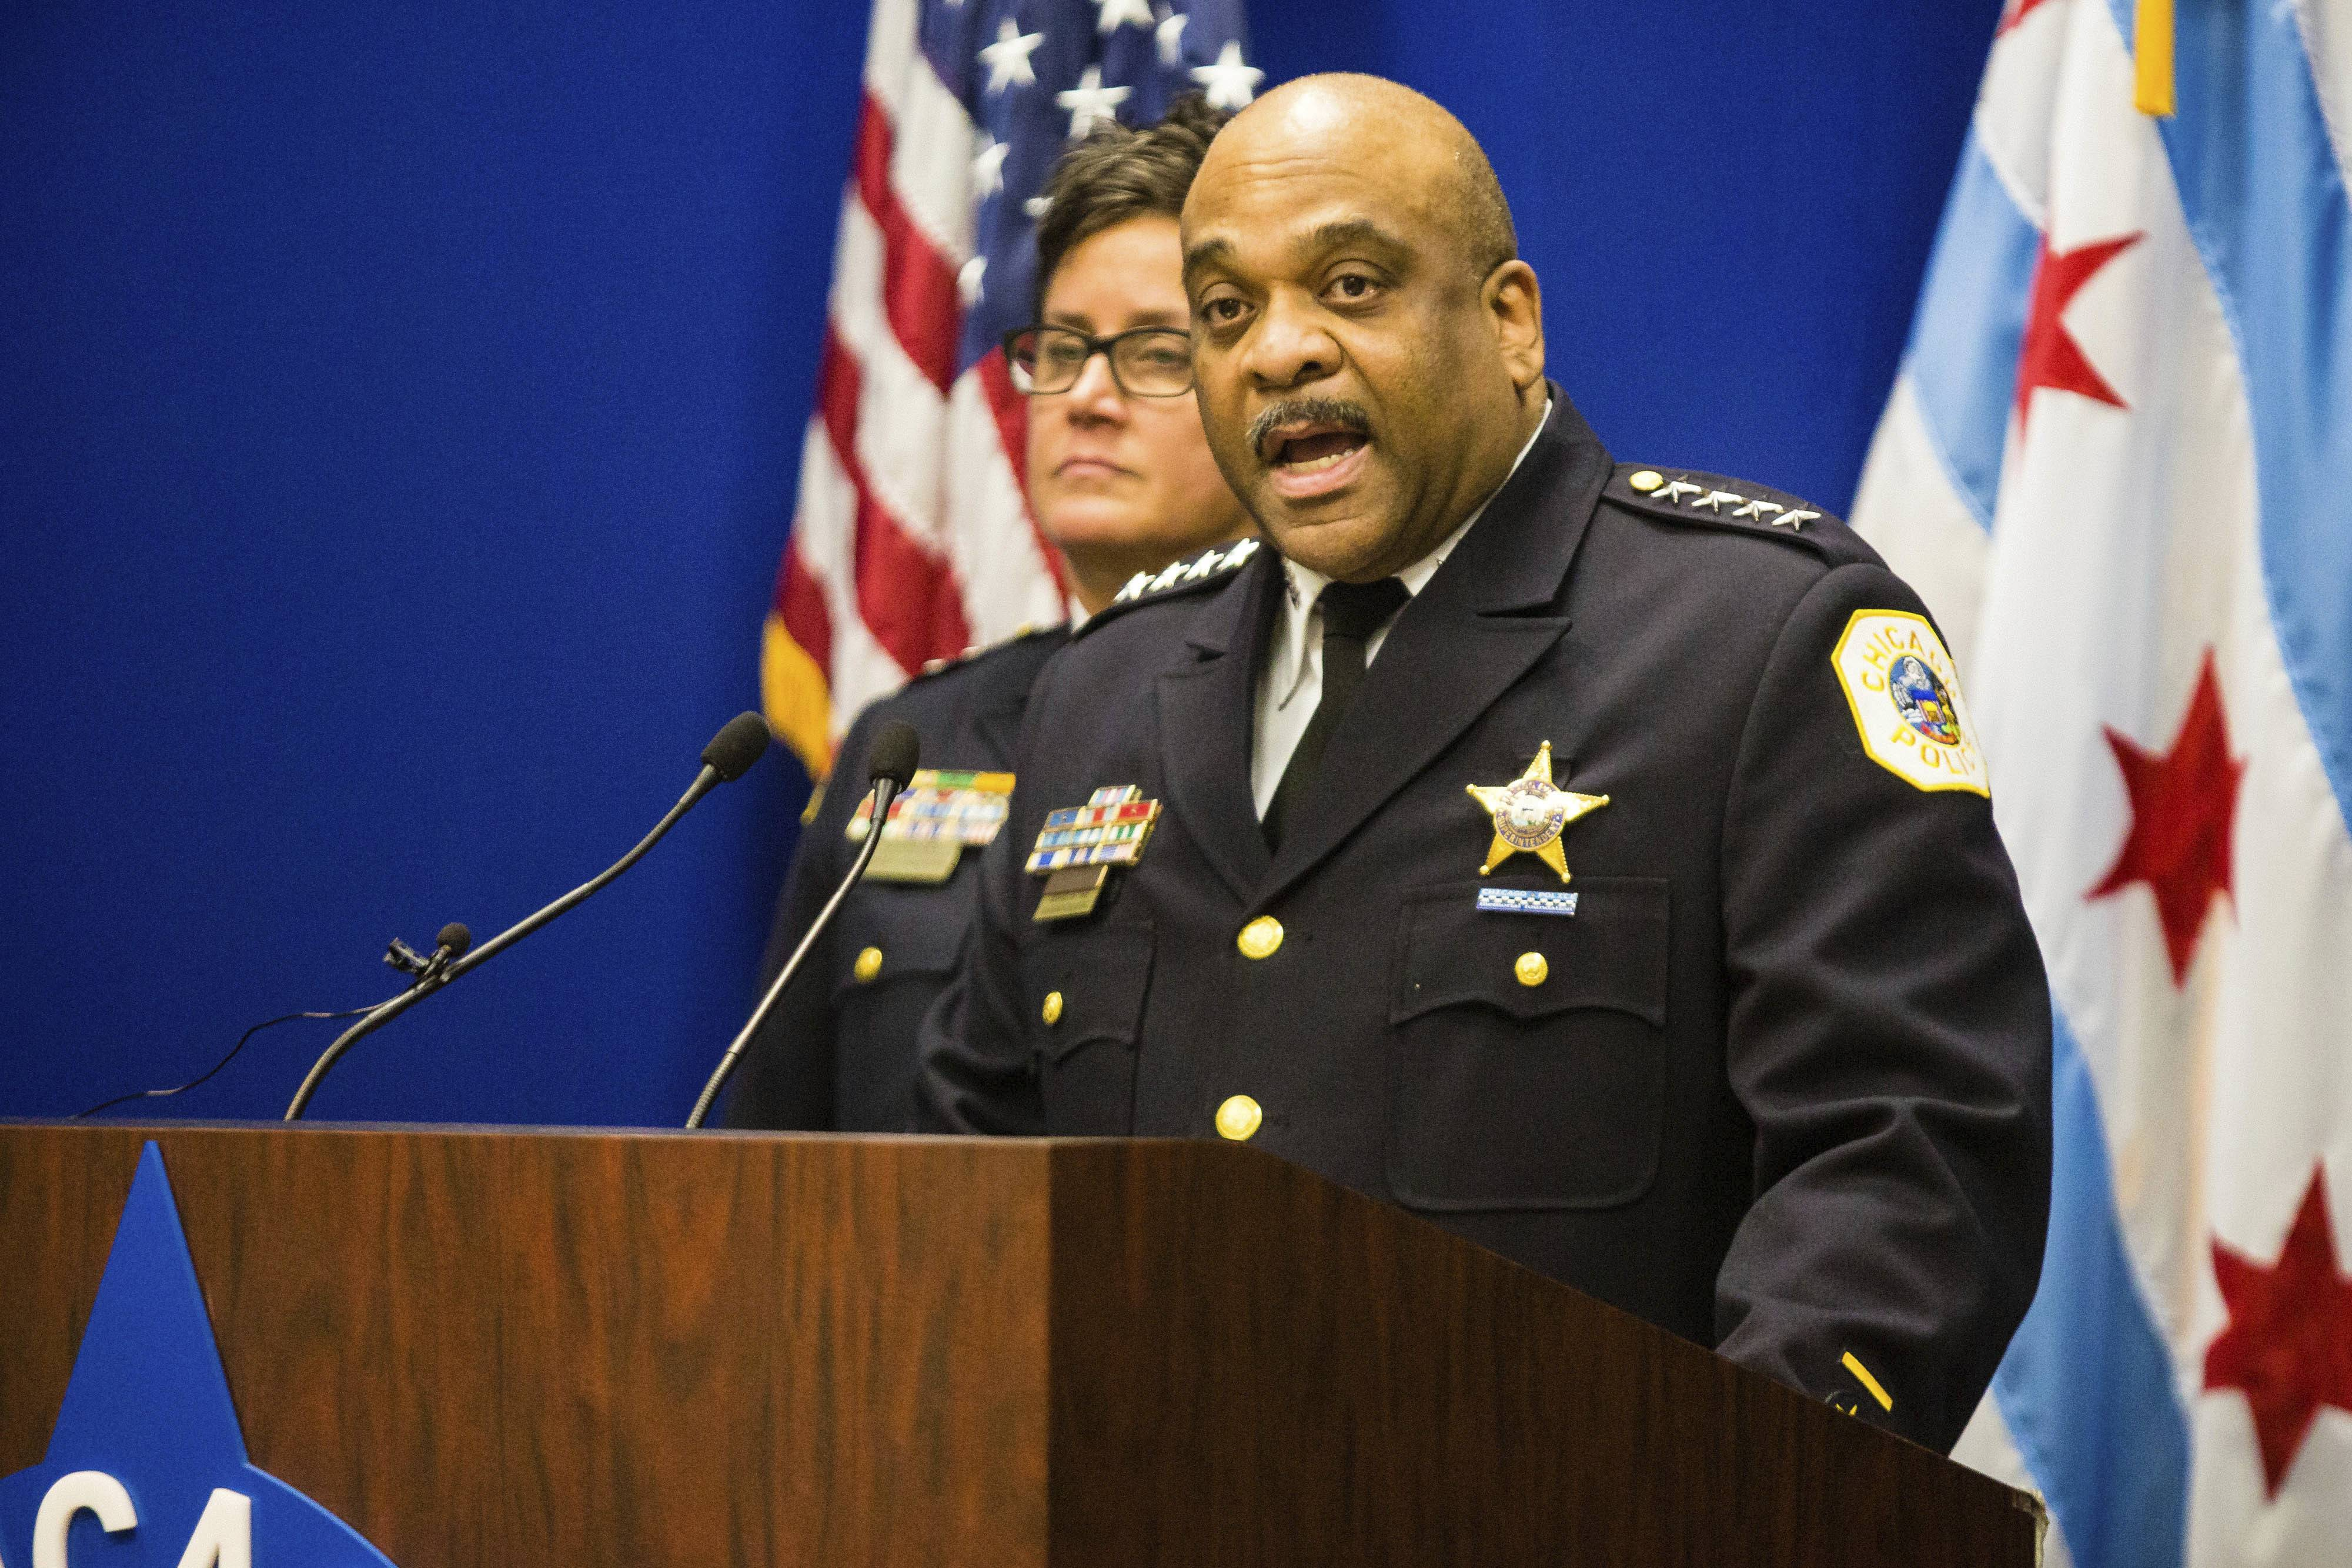 Chicago Police Superintendent Eddie Johnson speaks during a news conference Thursday about the hate crime and other charges filed against four individuals for an attack on a man captured on a Facebook video.